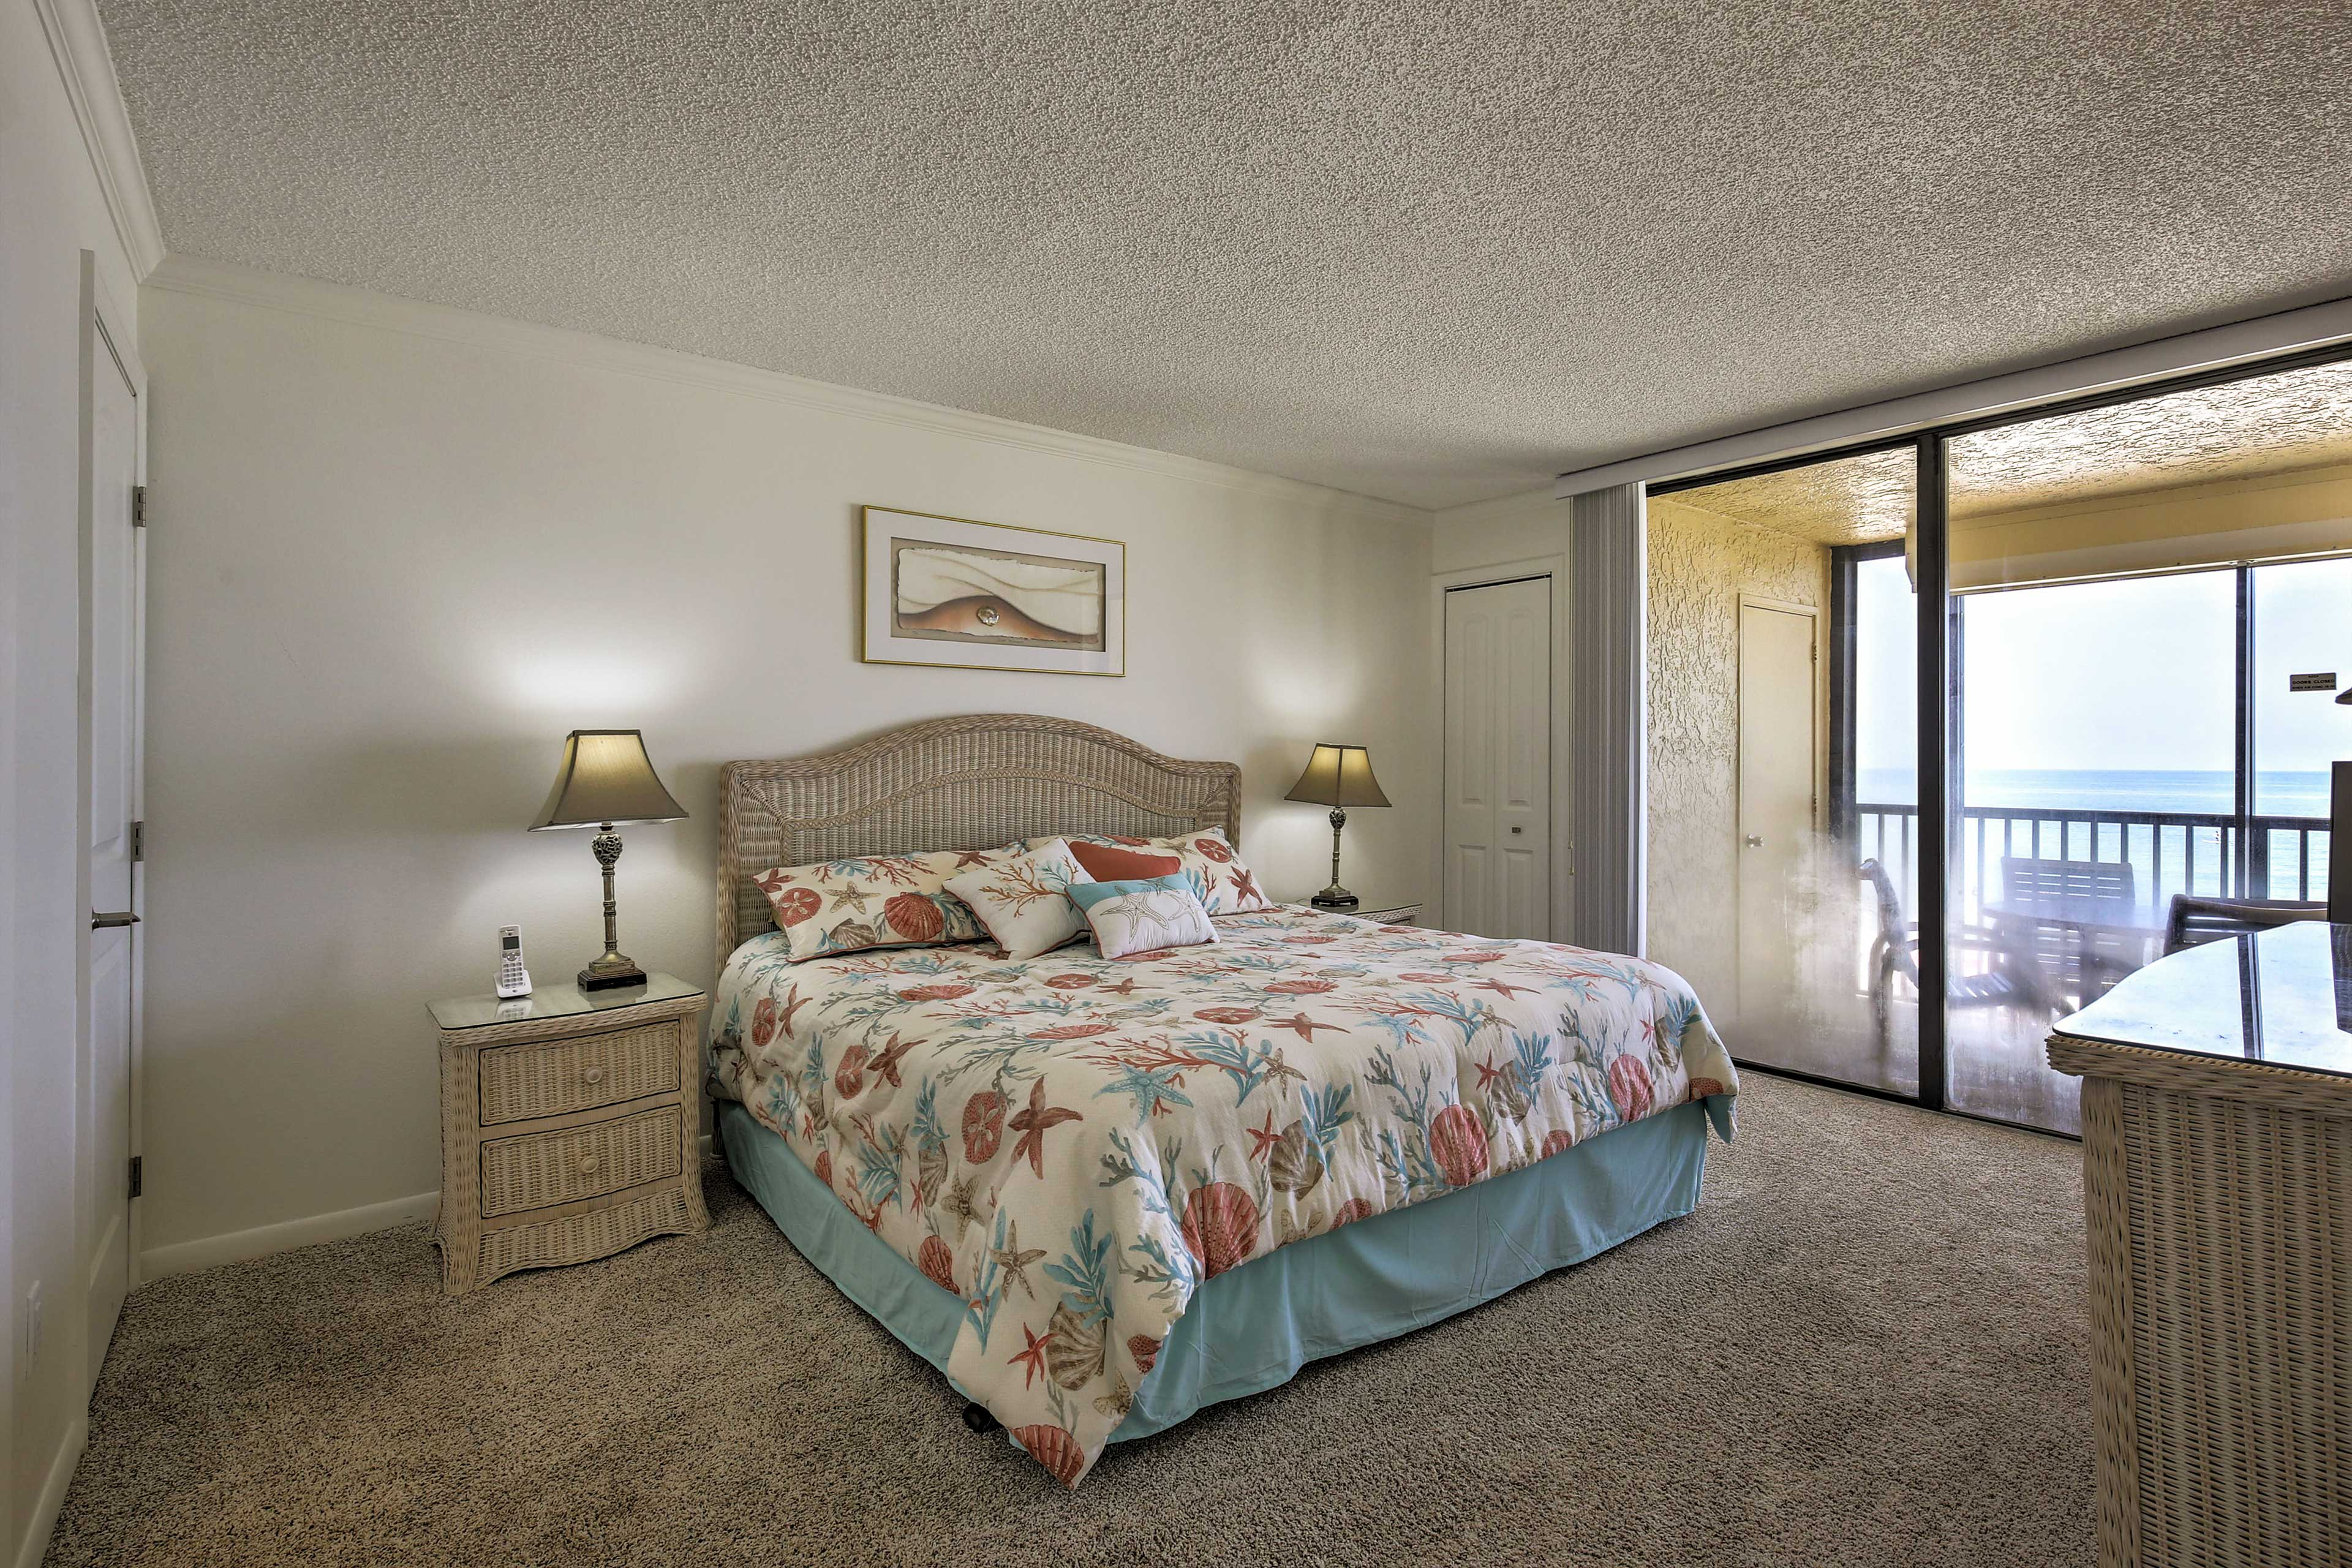 Retreat to the first bedroom for some privacy.